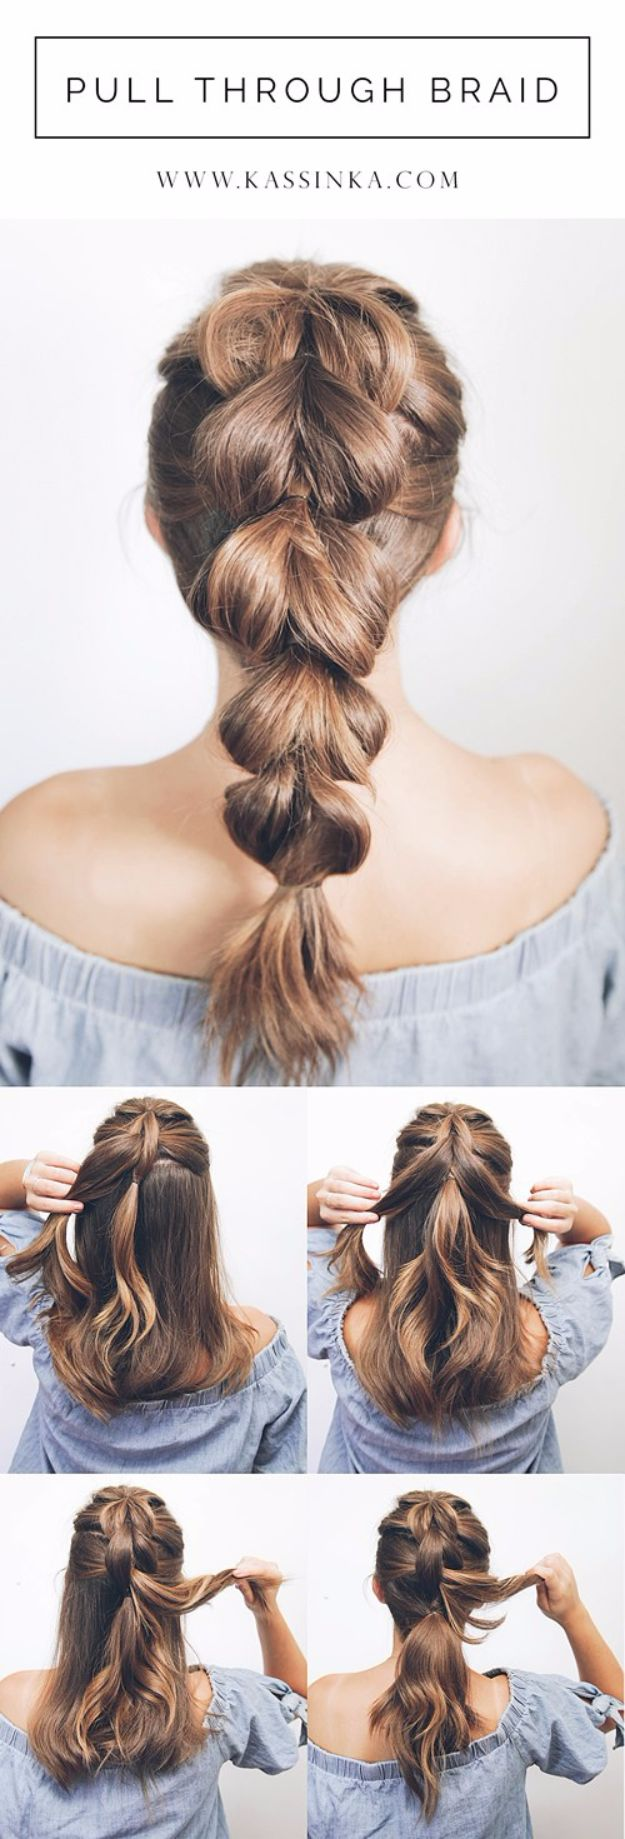 11 Cool Hair Tutorials for Summer - DIY Projects for Teens